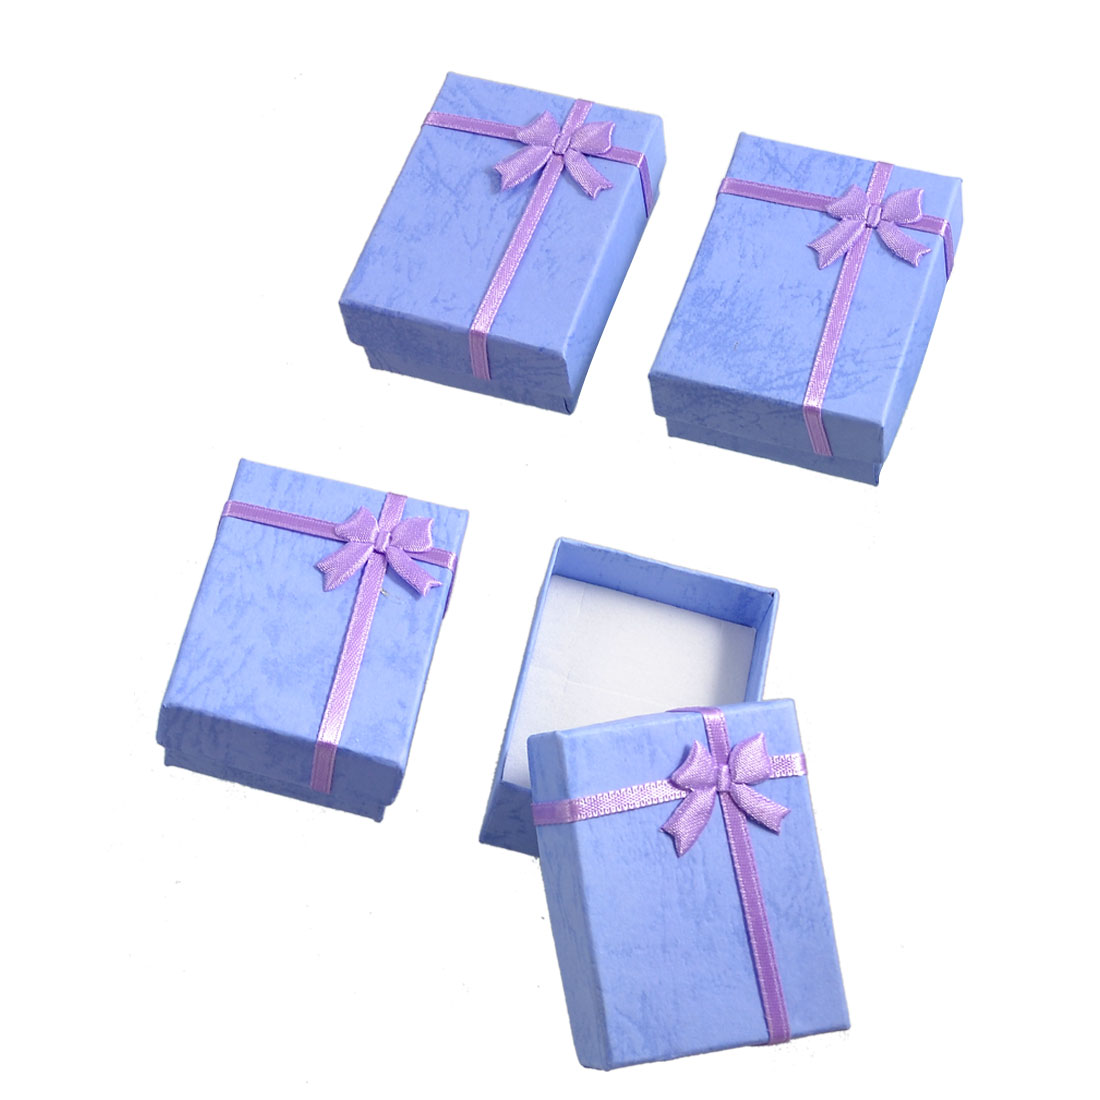 4 Boxes Bowtie Decor Rectangular Lavender Gift Cases Present Boxes Earrings Holder